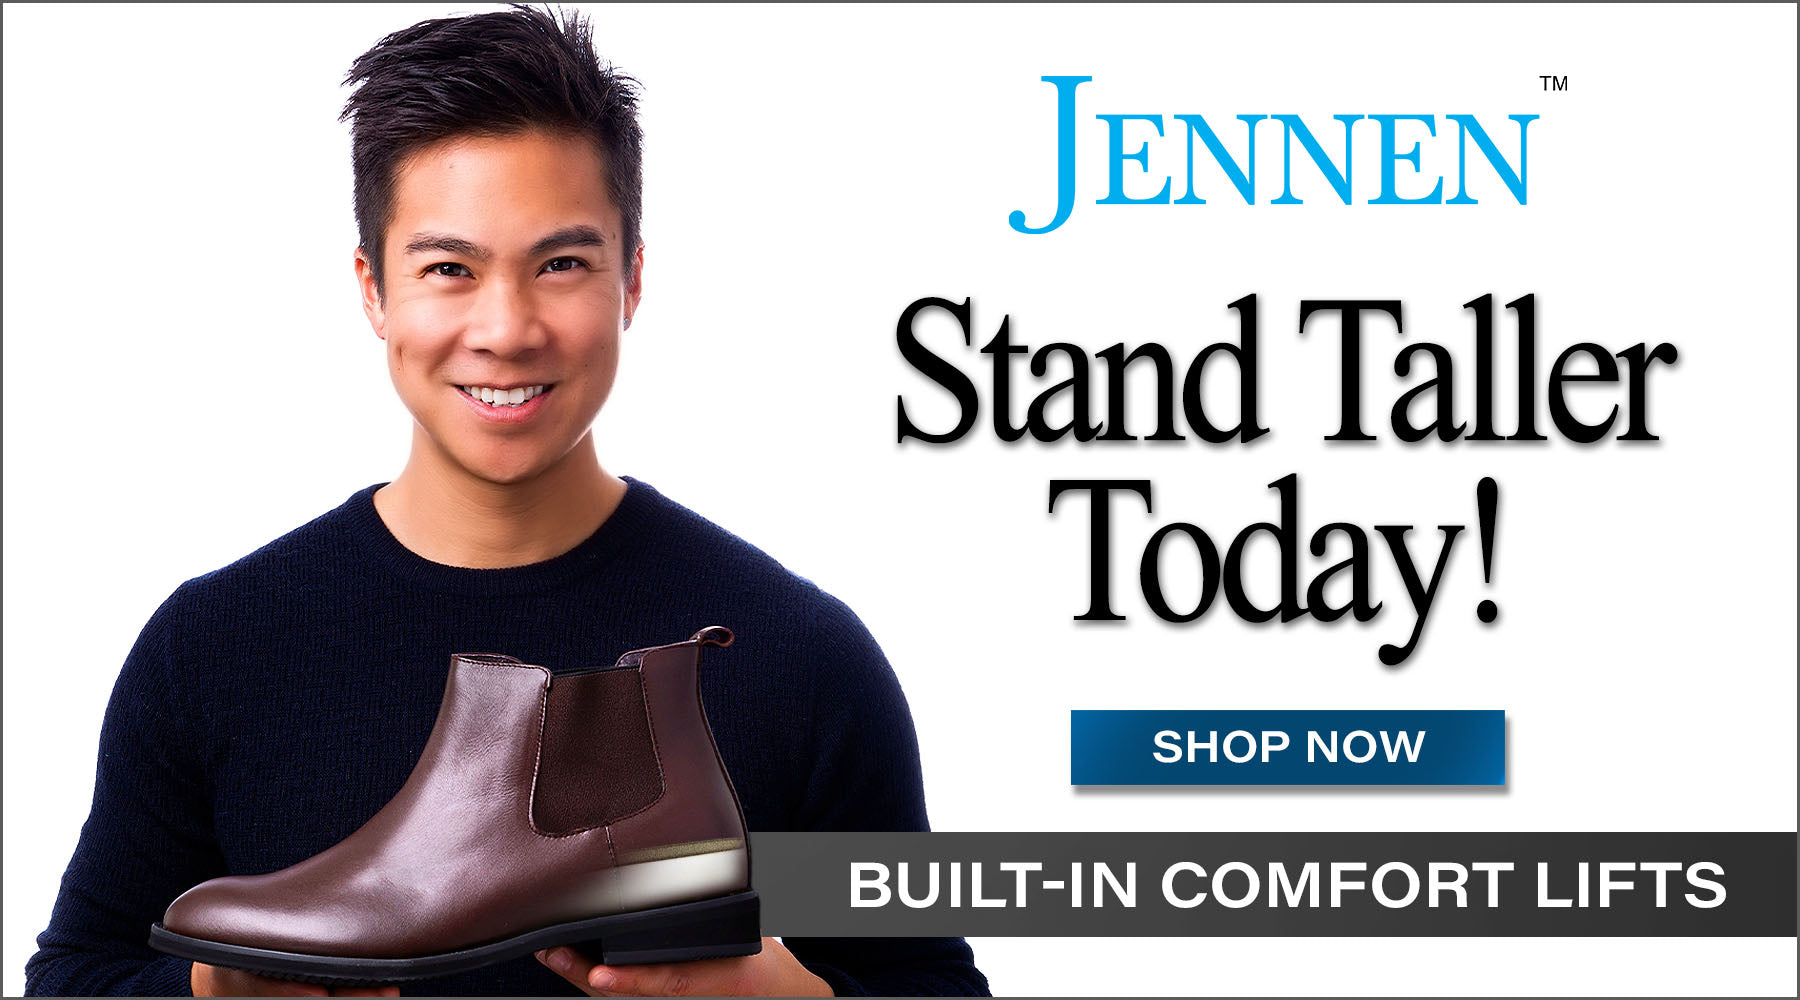 JENNEN shoes | Stand Taller Instantly!